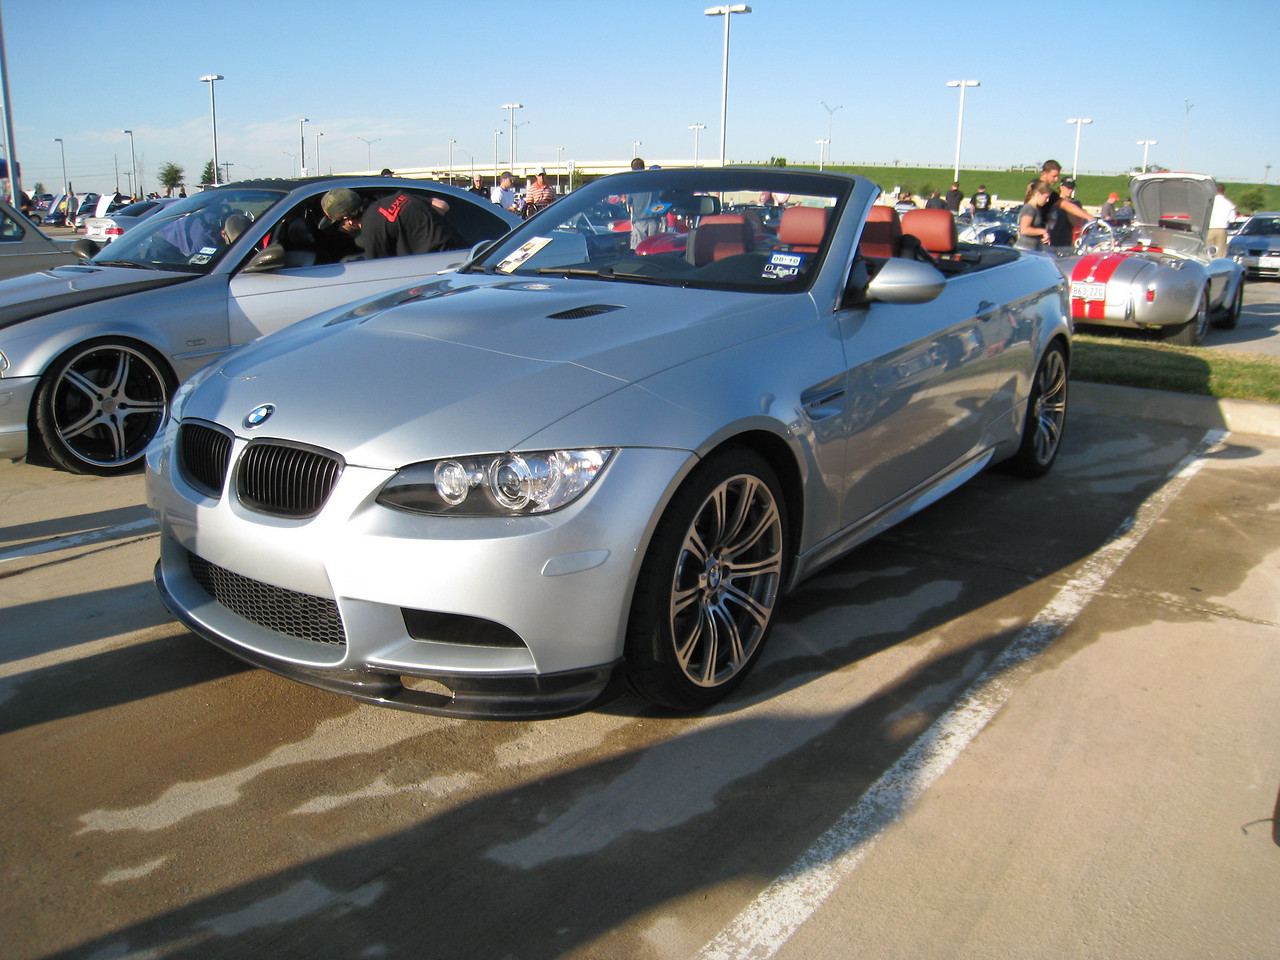 BMW M3 convertible with some extra aero add-ons